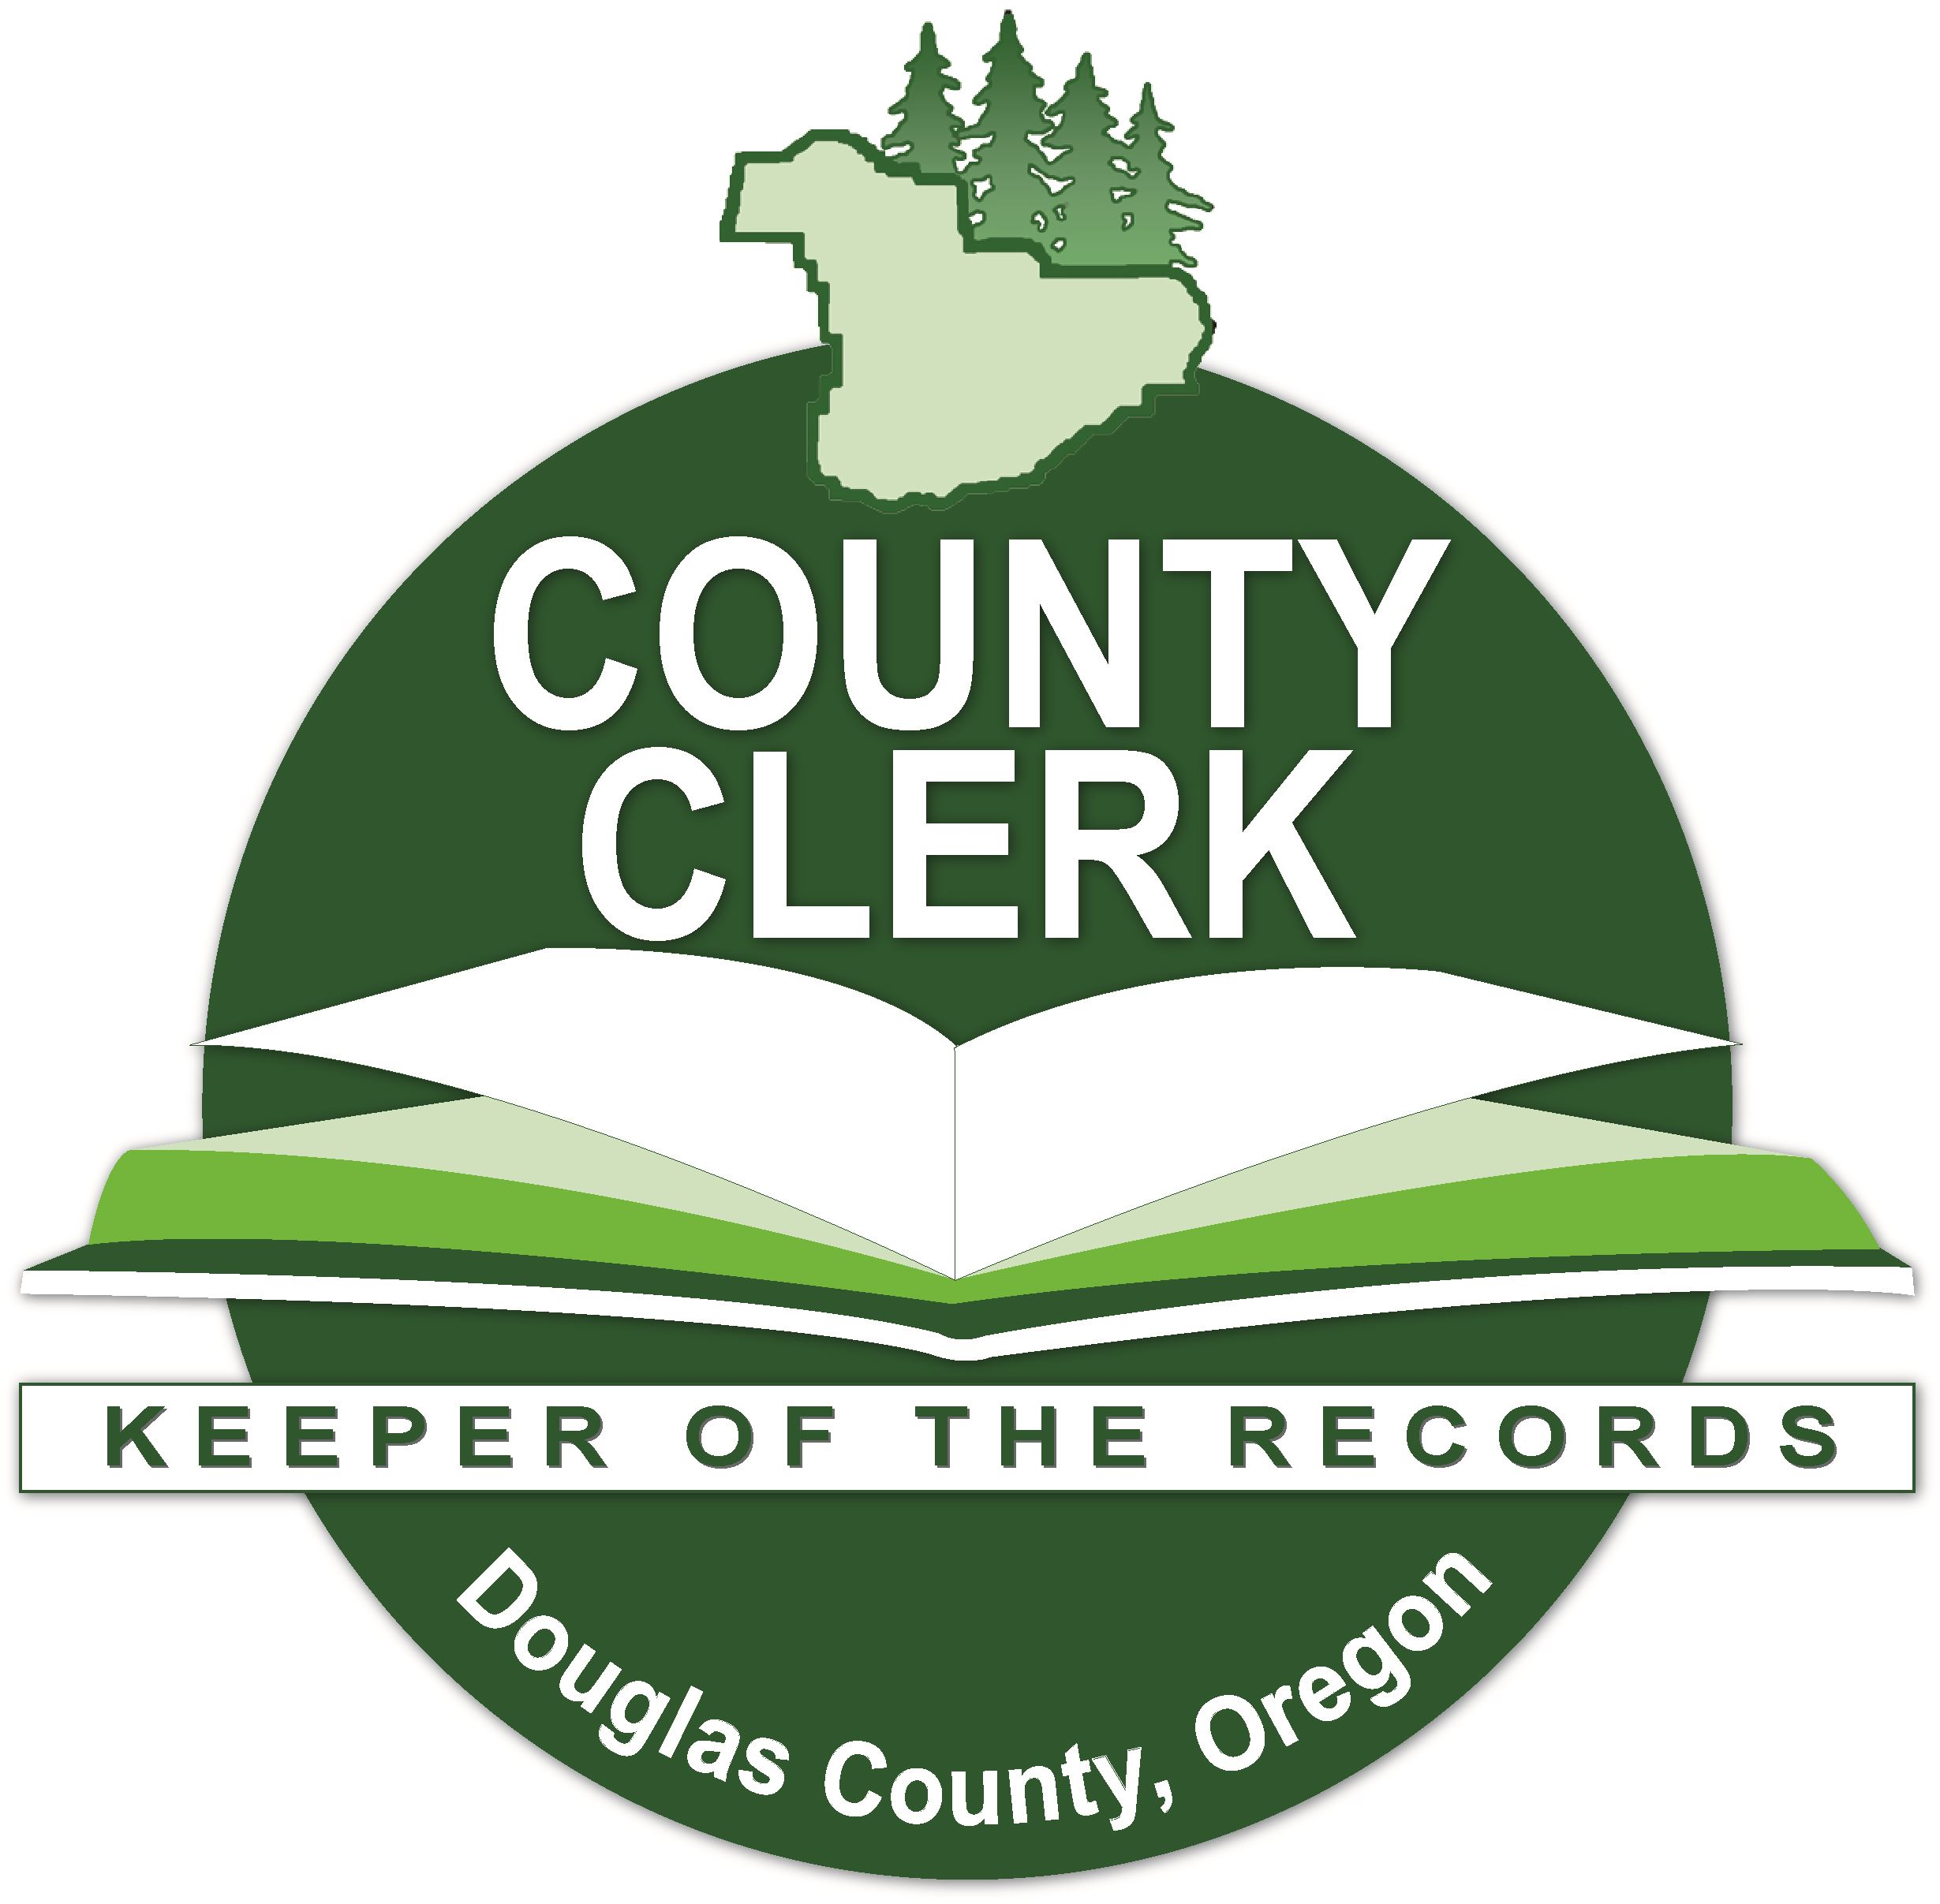 2-12-20 County Clerk Logo Final Rev 1